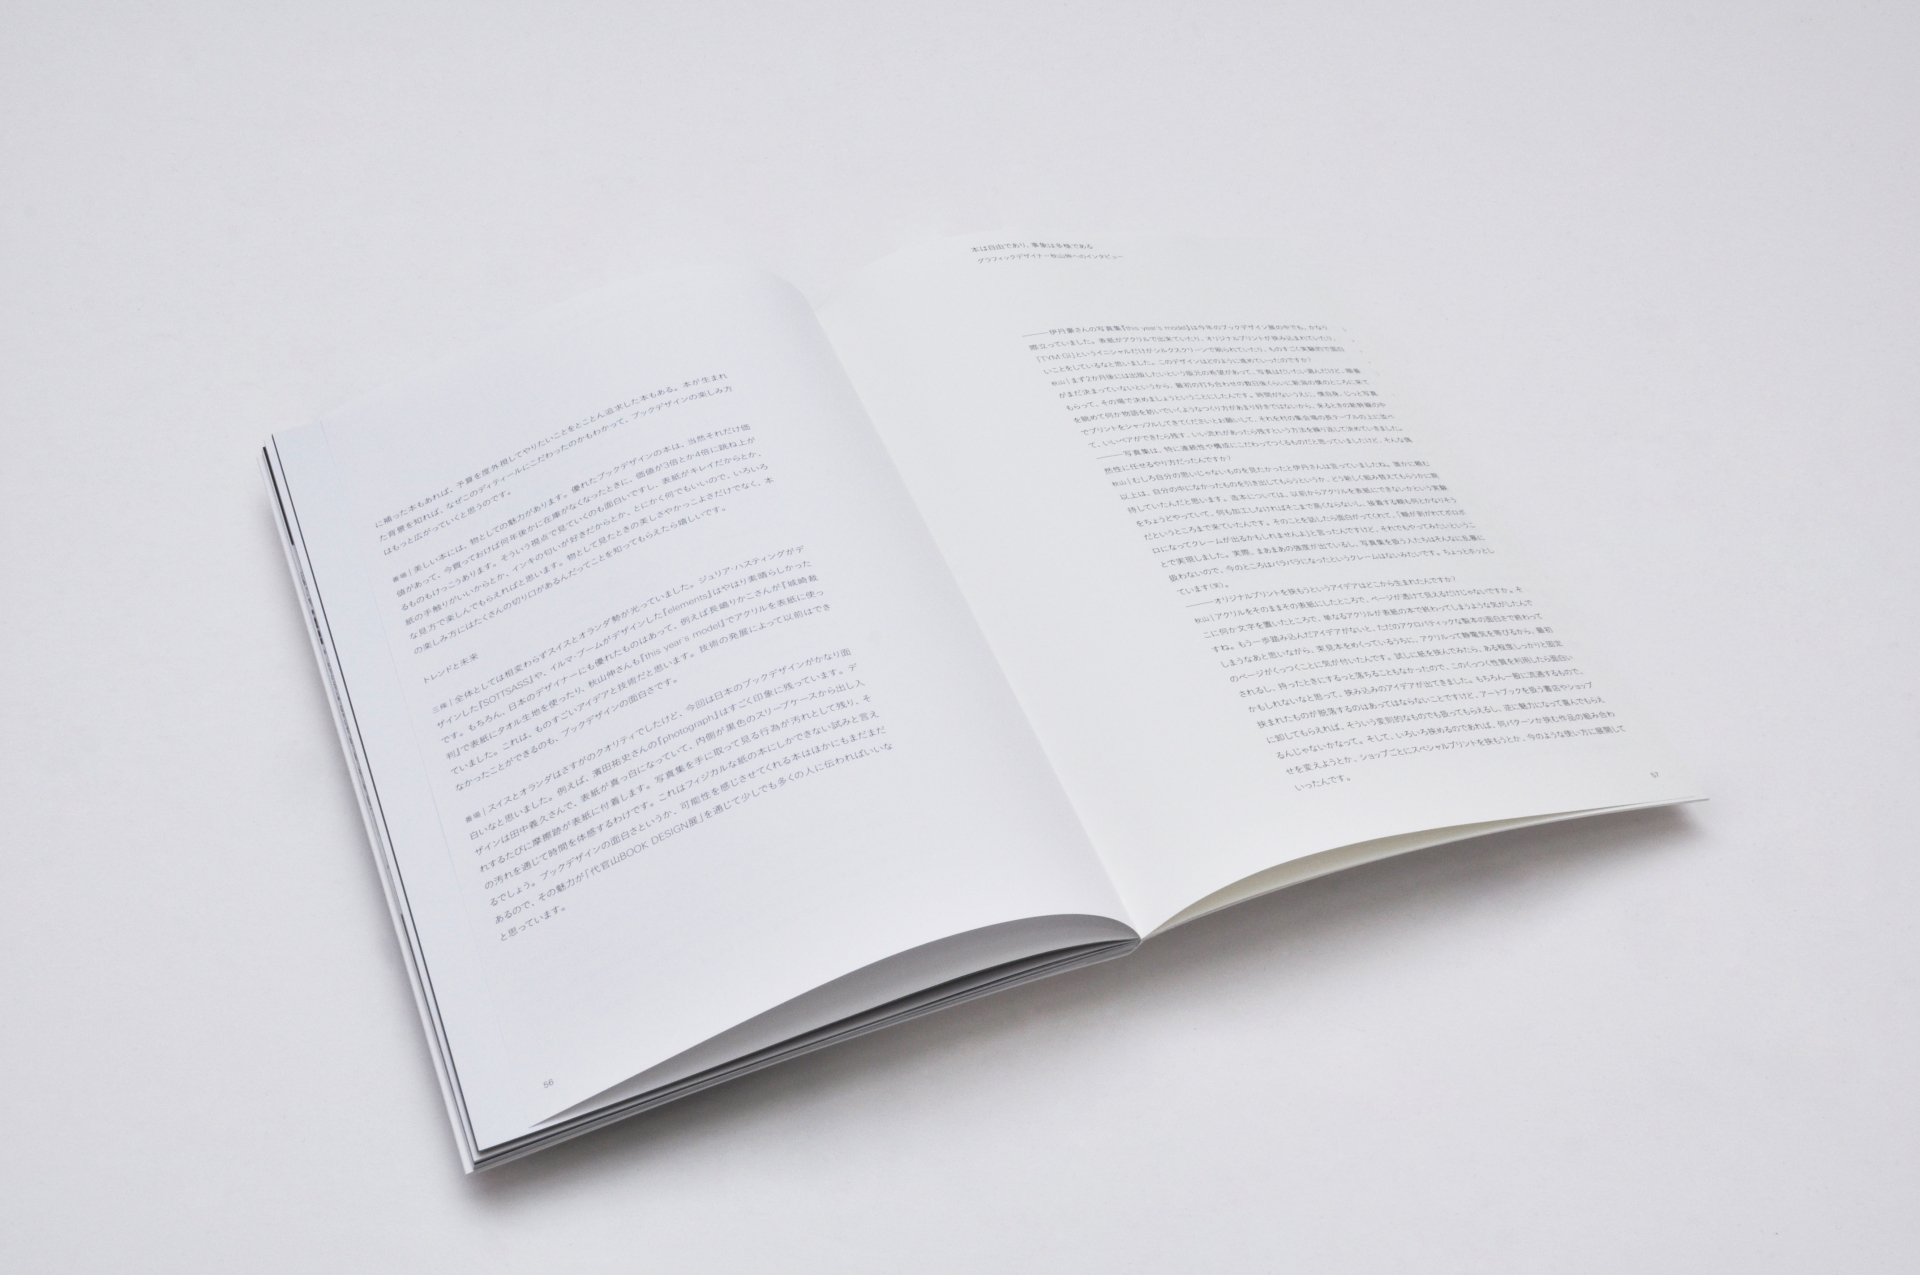 clara huber – visual communication Daikanyama Book Design Exhibition 2015